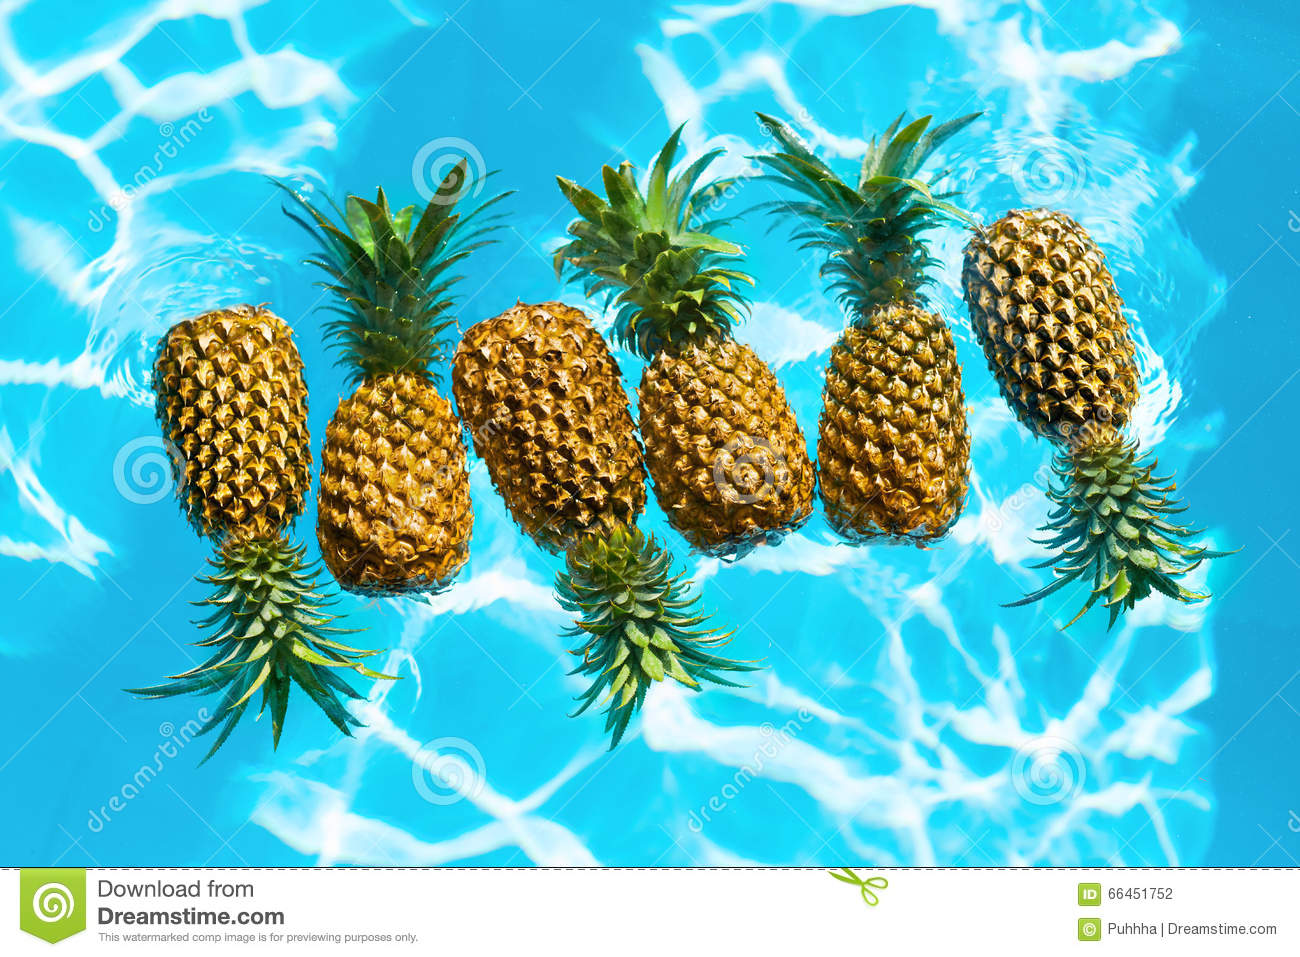 Pineapple With Sunglasses Tumblr Healthy Organic Food Fresh Pineapples In Water Fruit